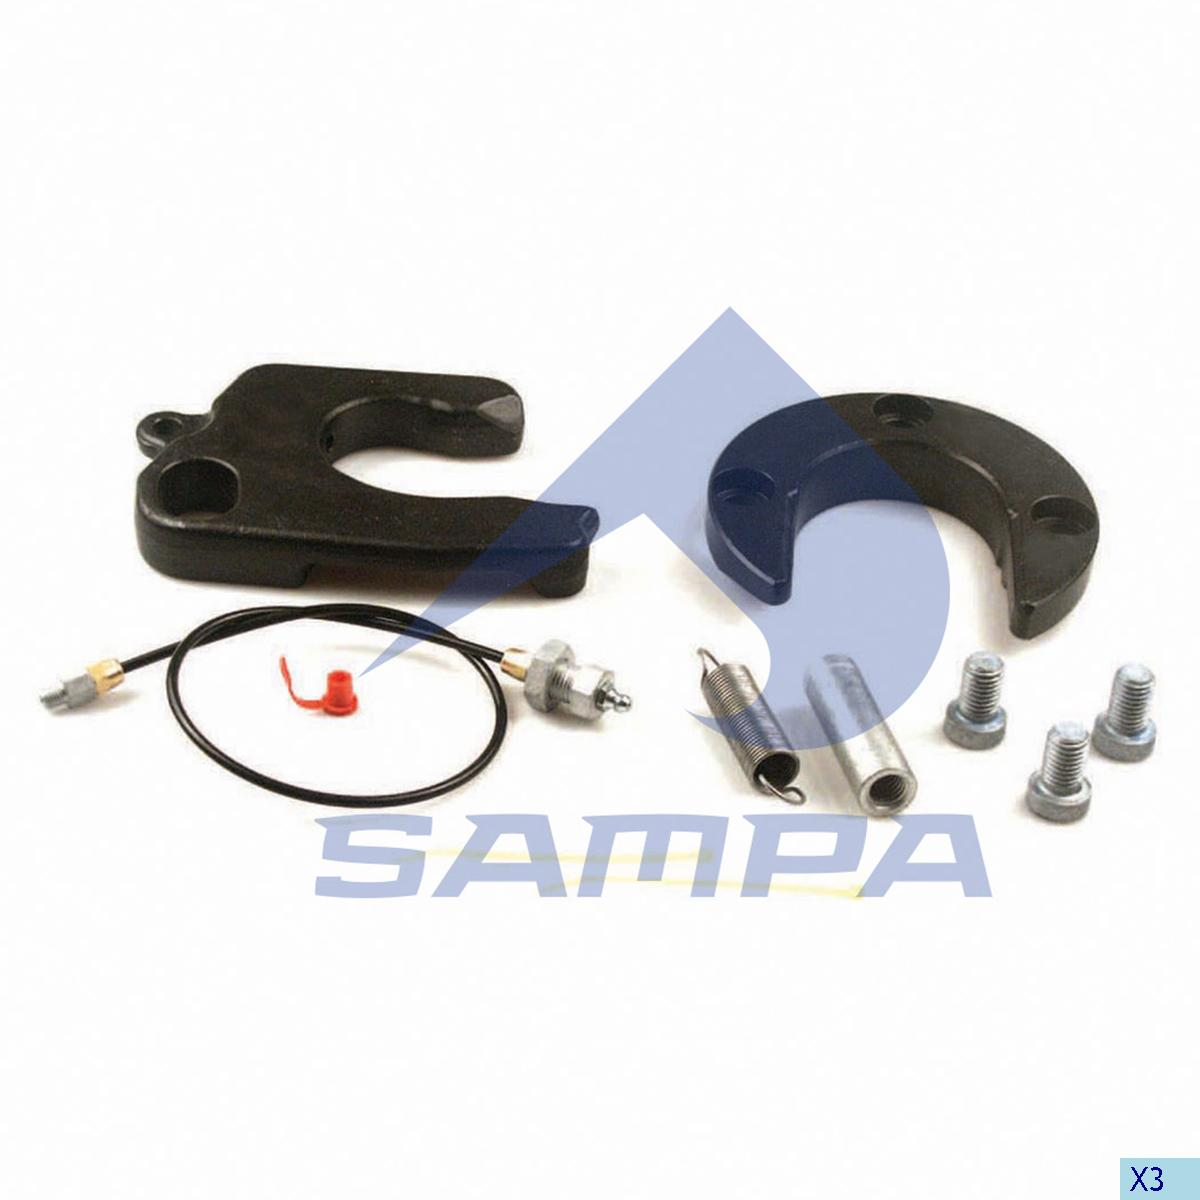 Repair Kit, Fifth Wheel, Jost, Complementary Equipment